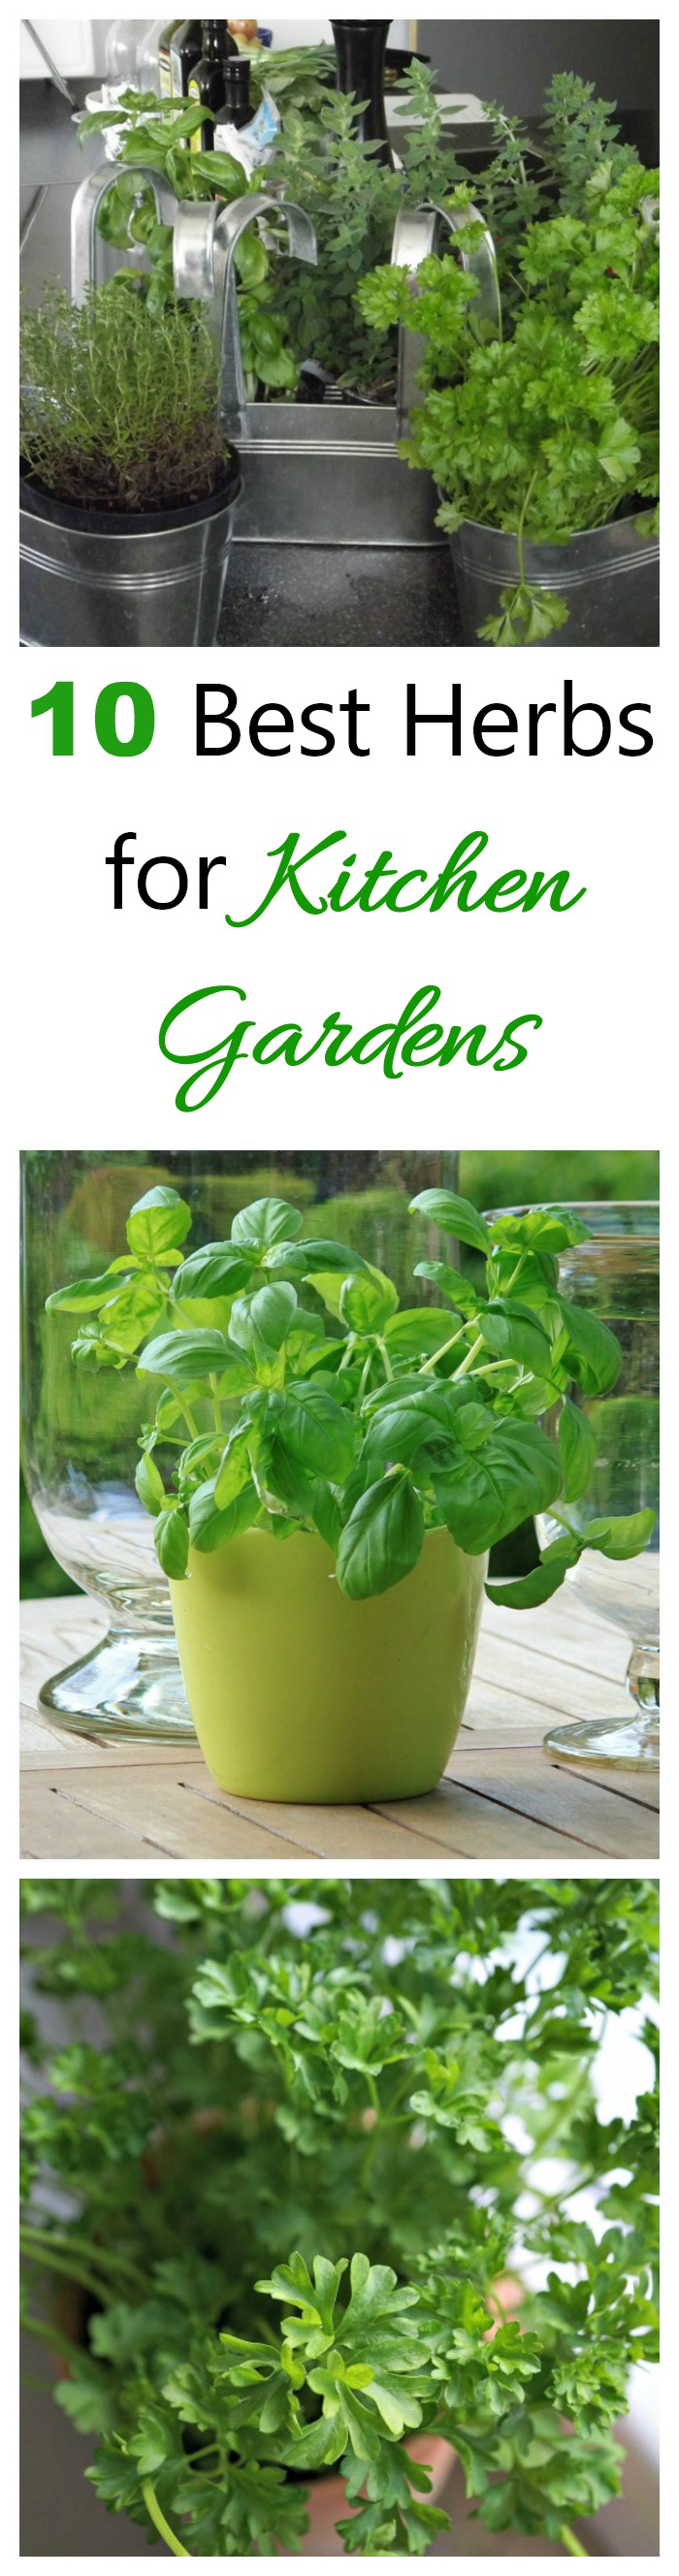 These are the best herbs for kitchen gardens. All can be grown as indoor plants year round.